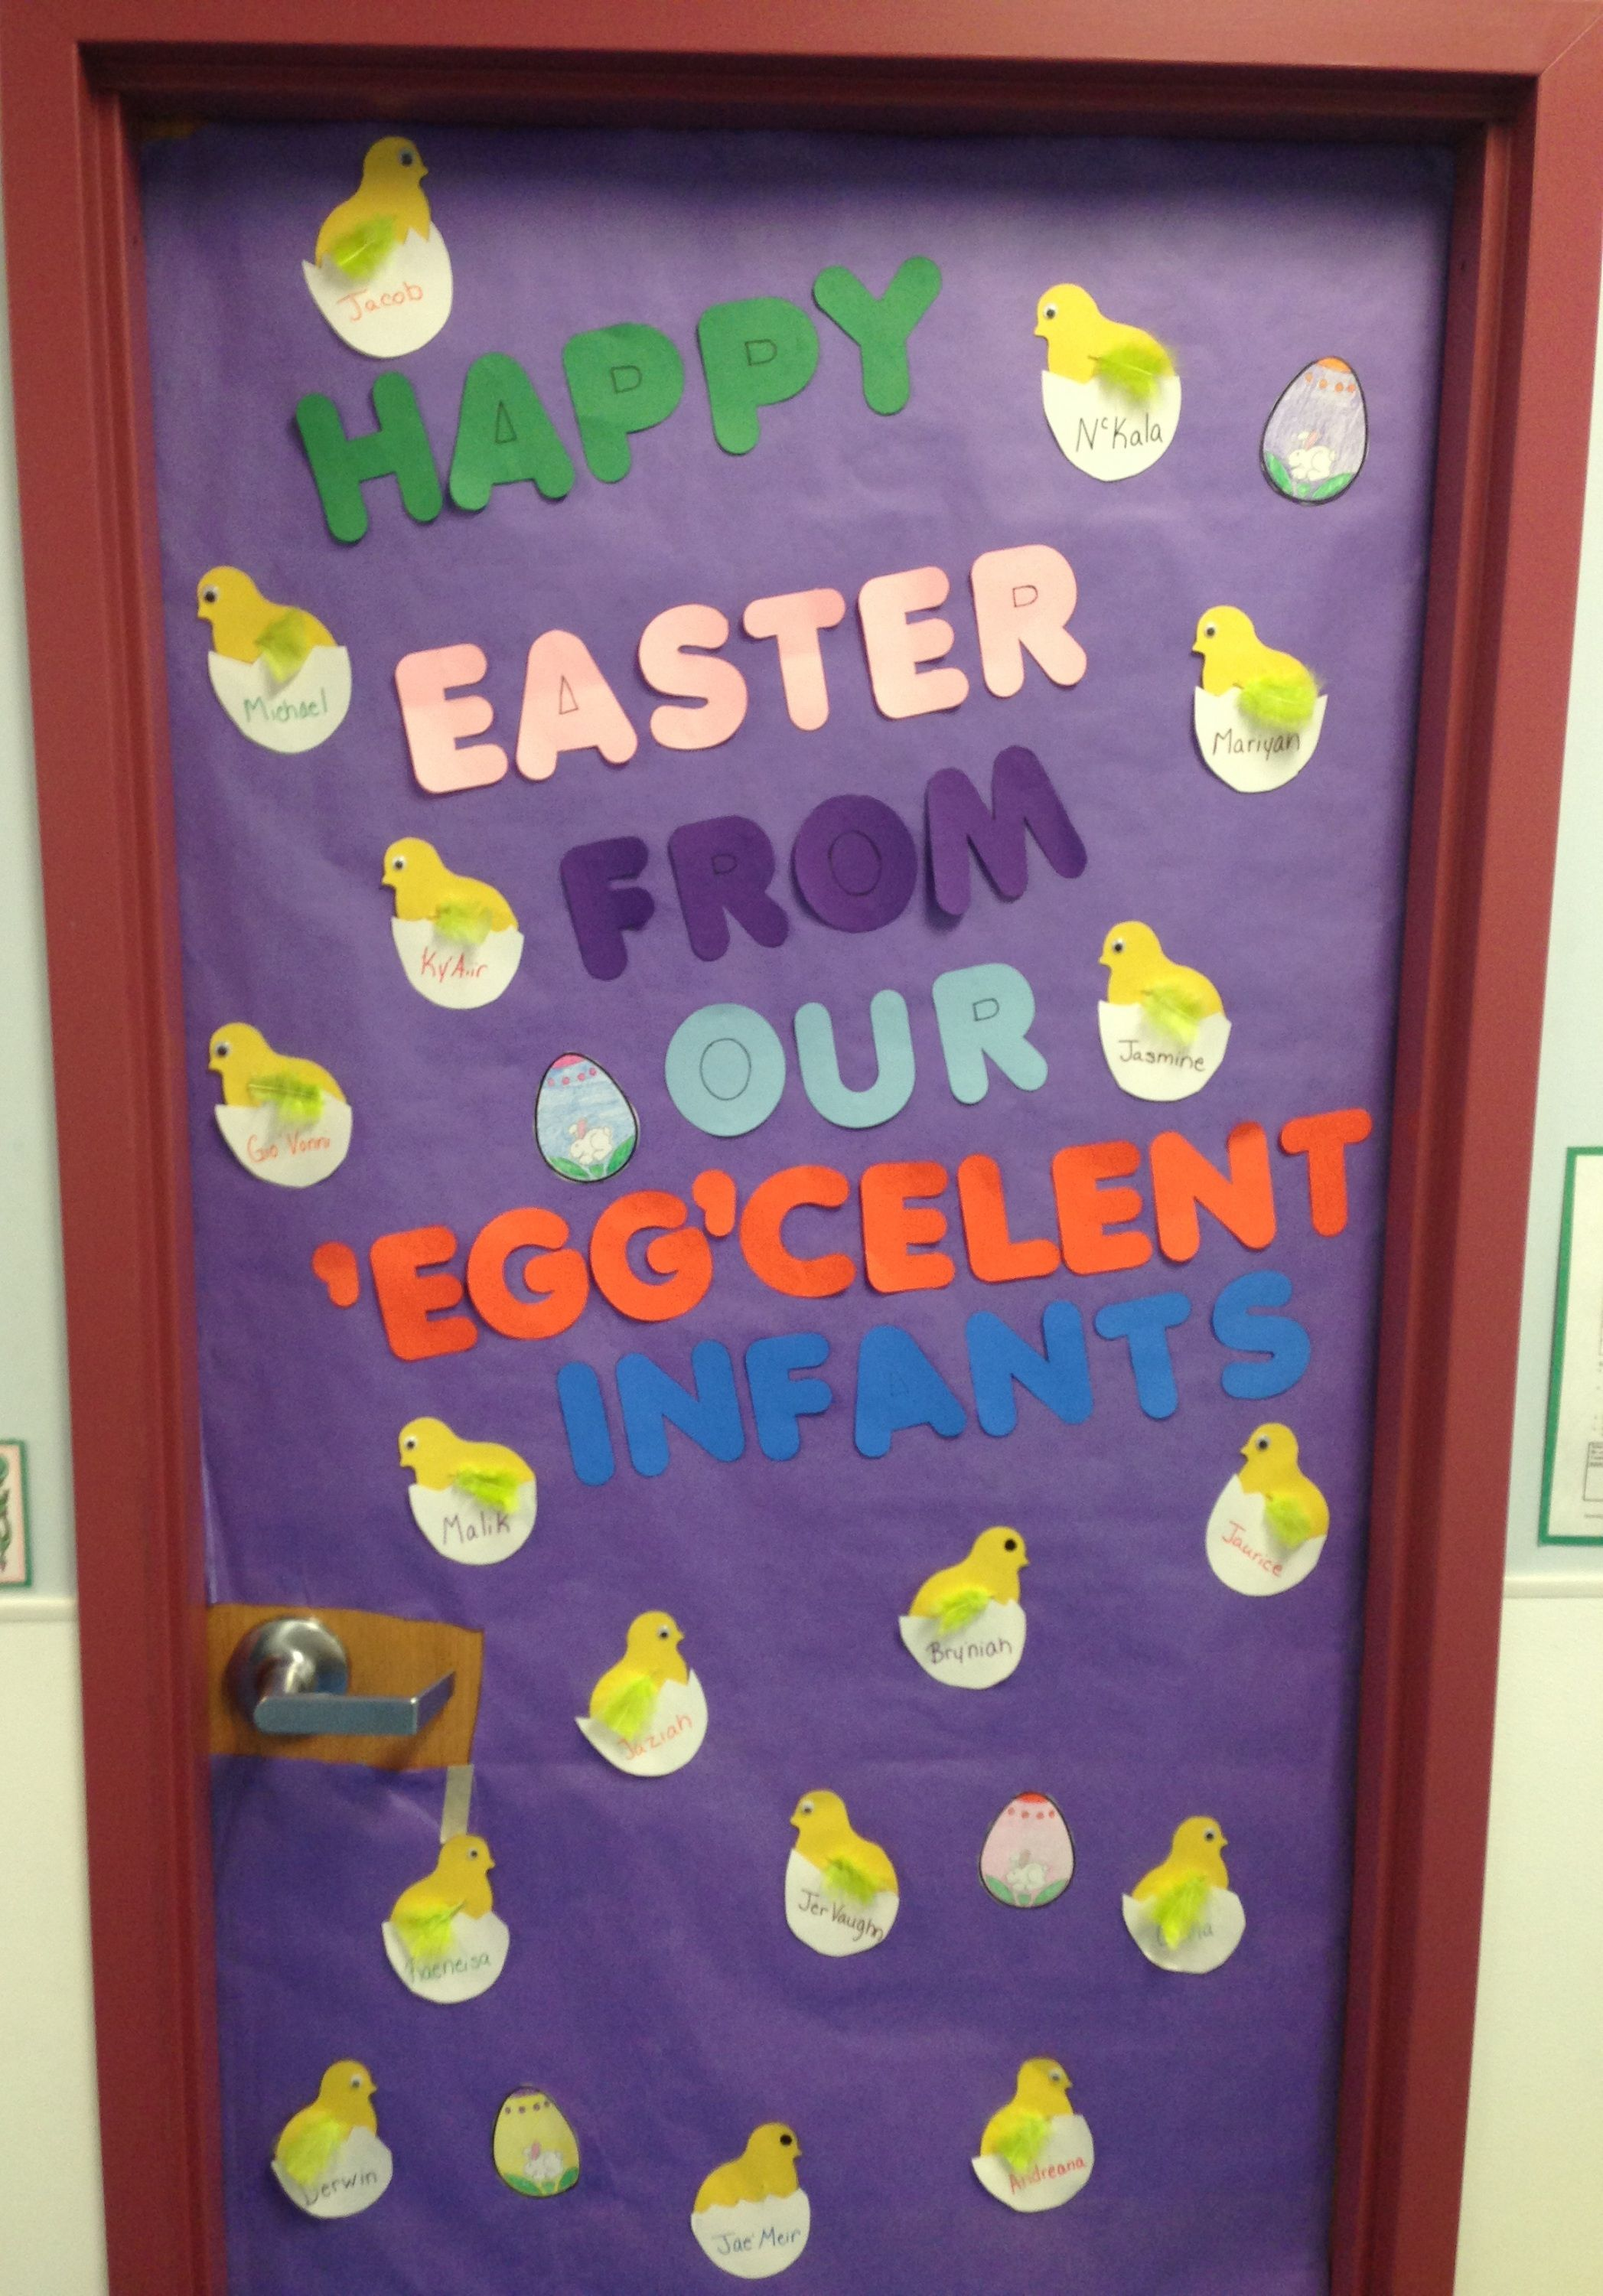 Happy Easter From Our Egg Celent Infants